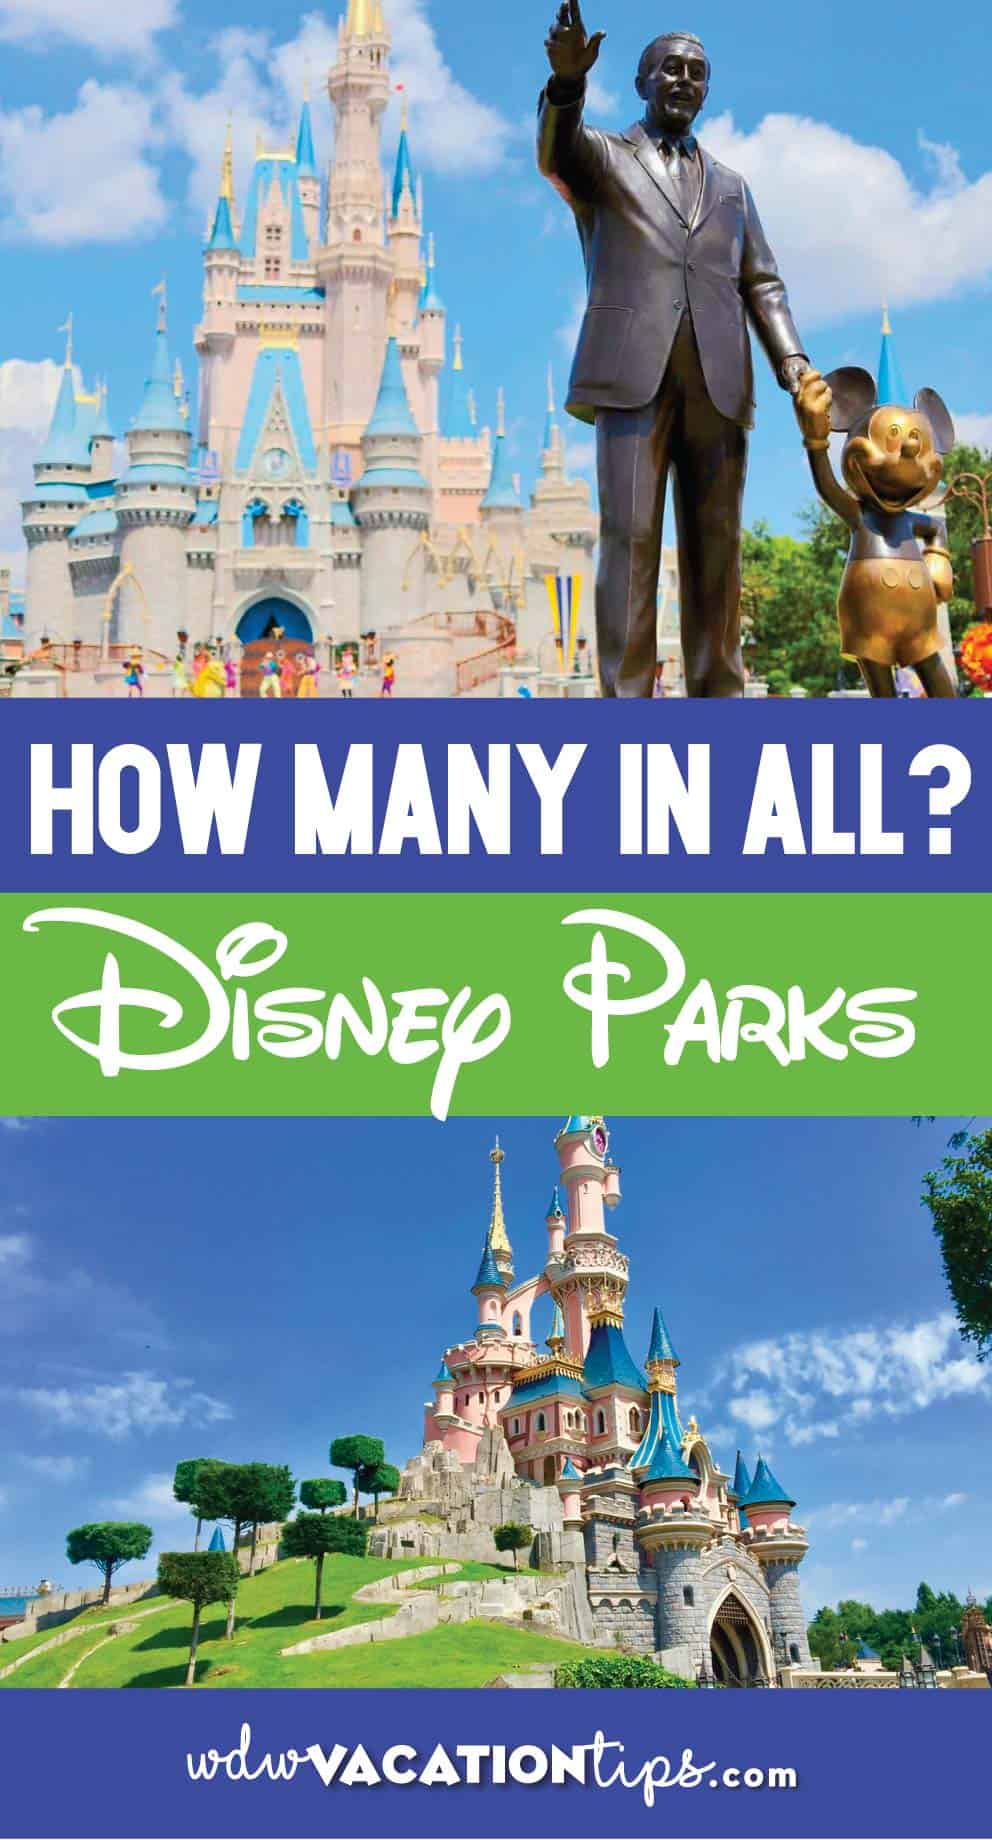 How Many Disney Parks are There? 9